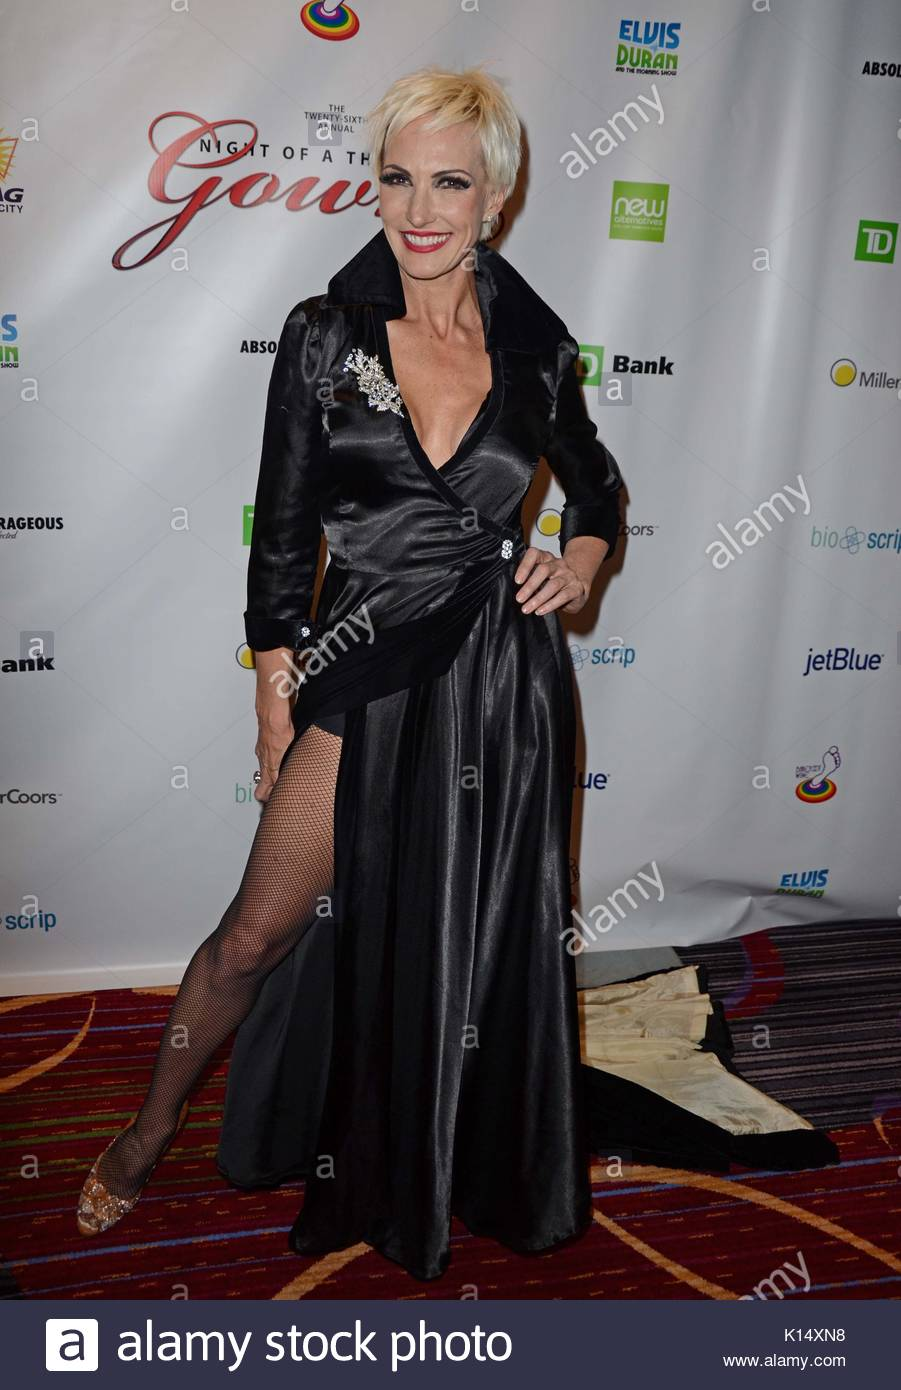 Amra-Faye Wright. Night of 1000 Gowns at the Marriott Marquis in NYC ...